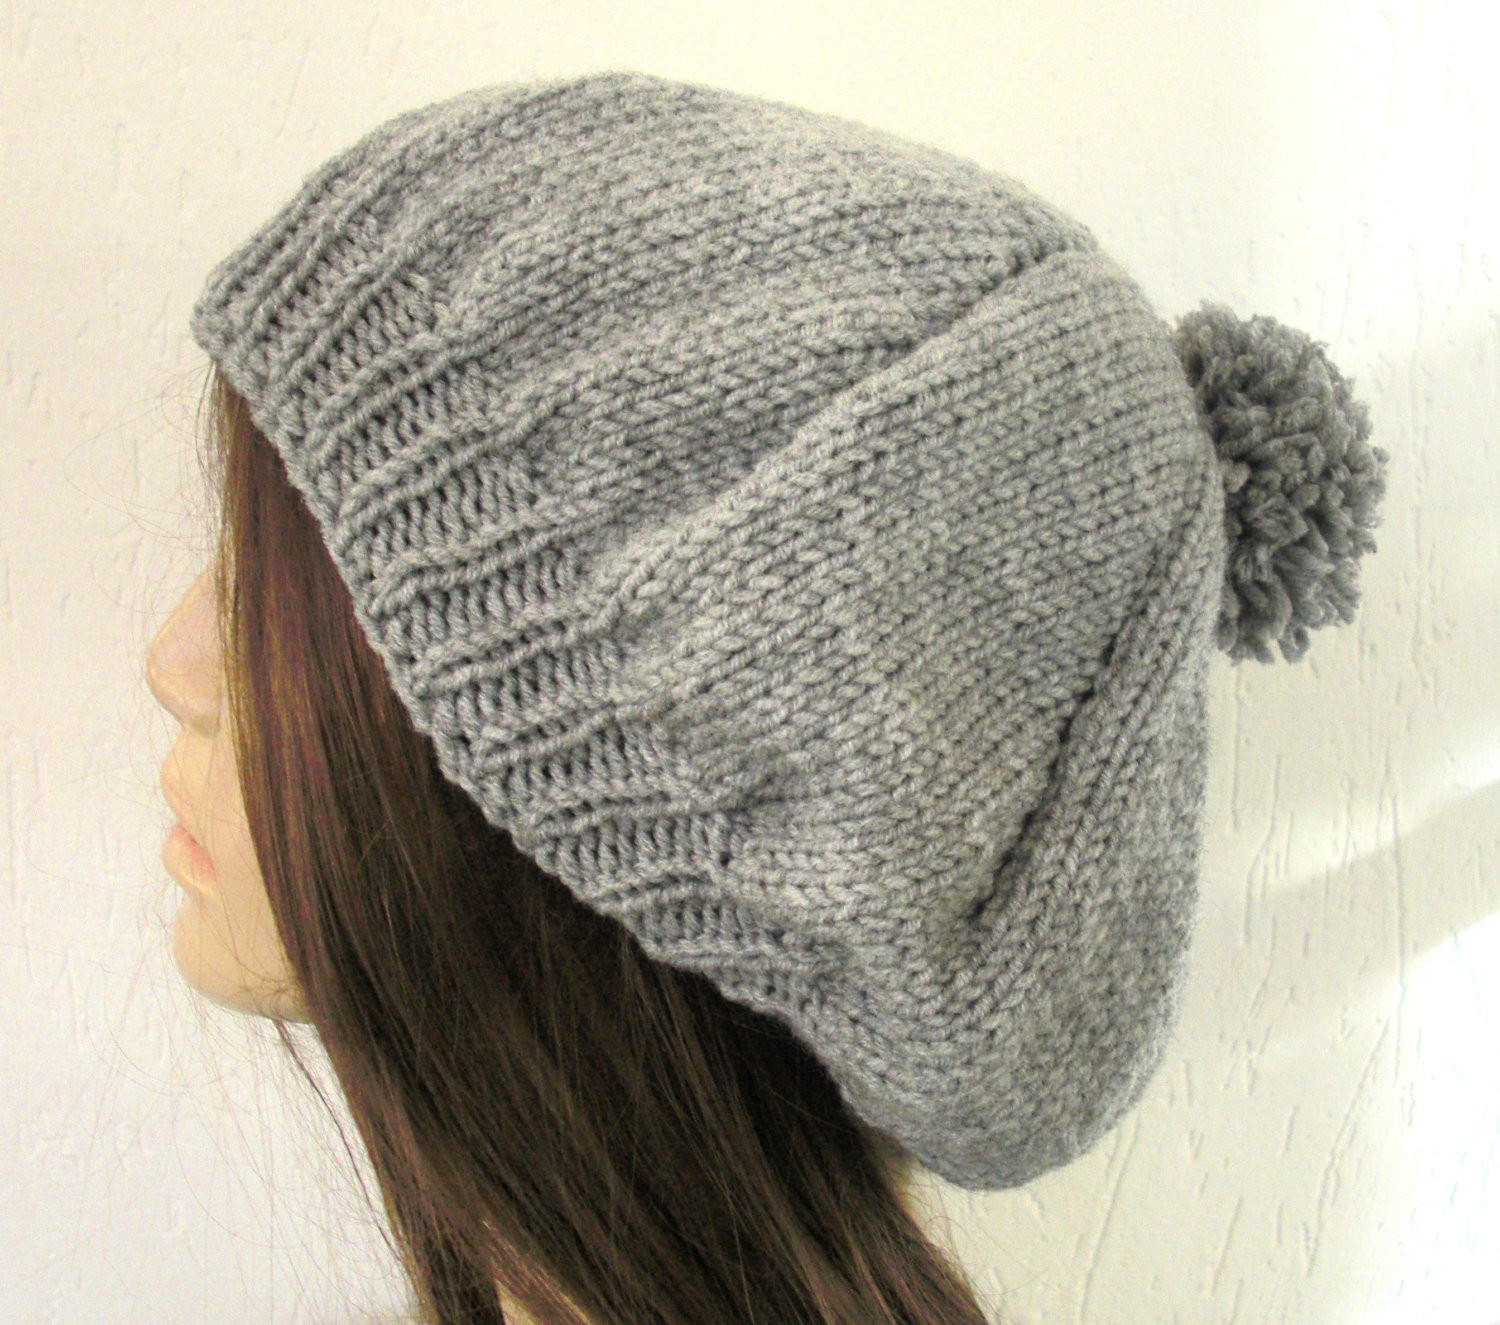 Knitting Patterns For Women : Knit Hat Patterns for Women A Knitting Blog